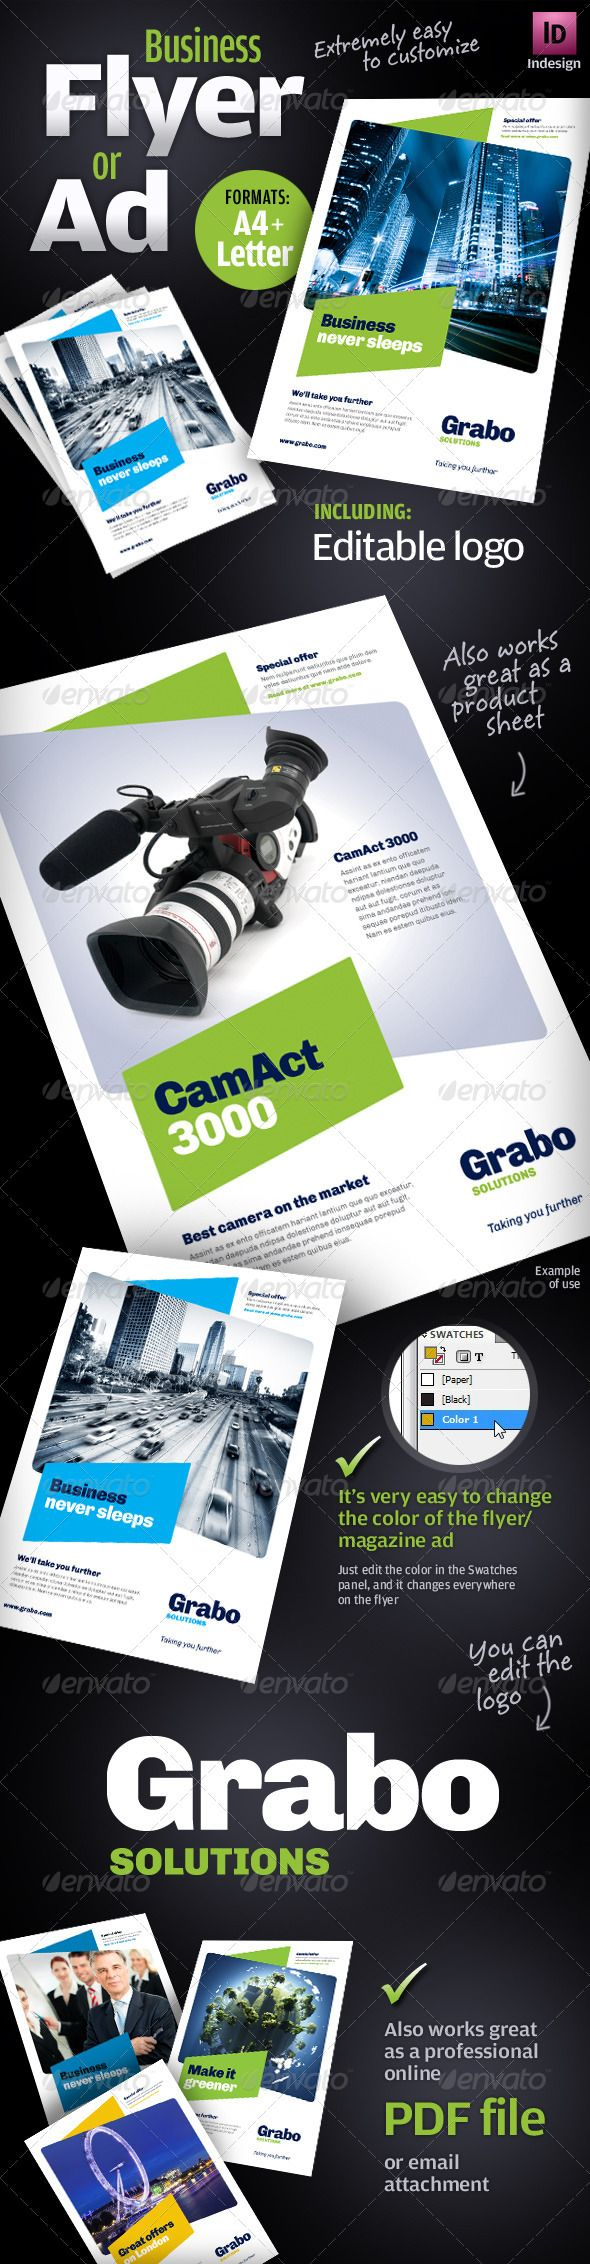 best images about promotion products banner 17 best images about promotion products banner the flyer and adobe photoshop